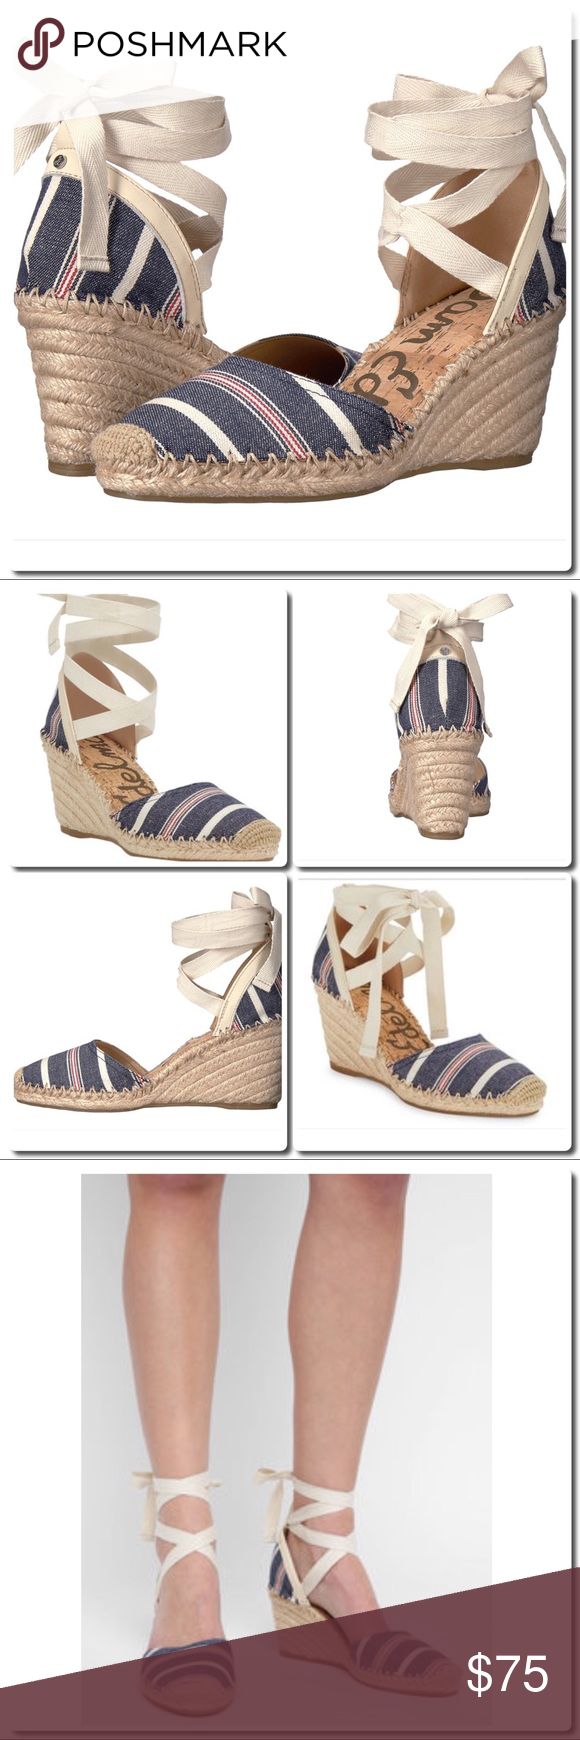 976124978 Sam Edelman Lace Up Espadrilles Super cute and ready for spring dressing